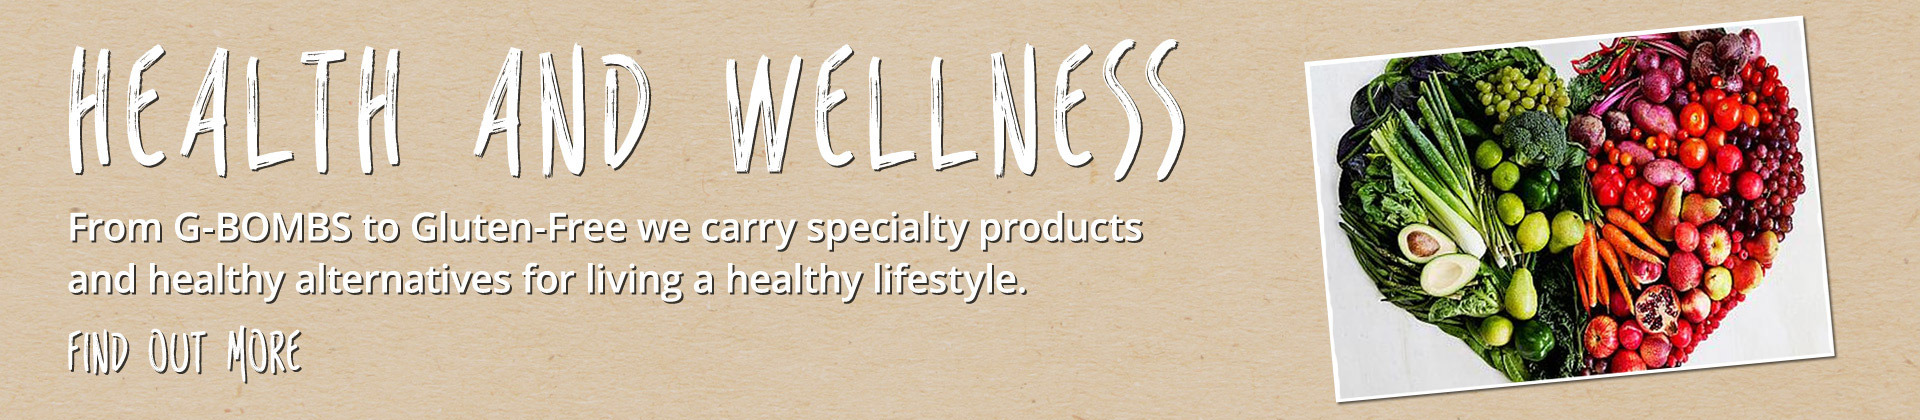 /health-and-wellness